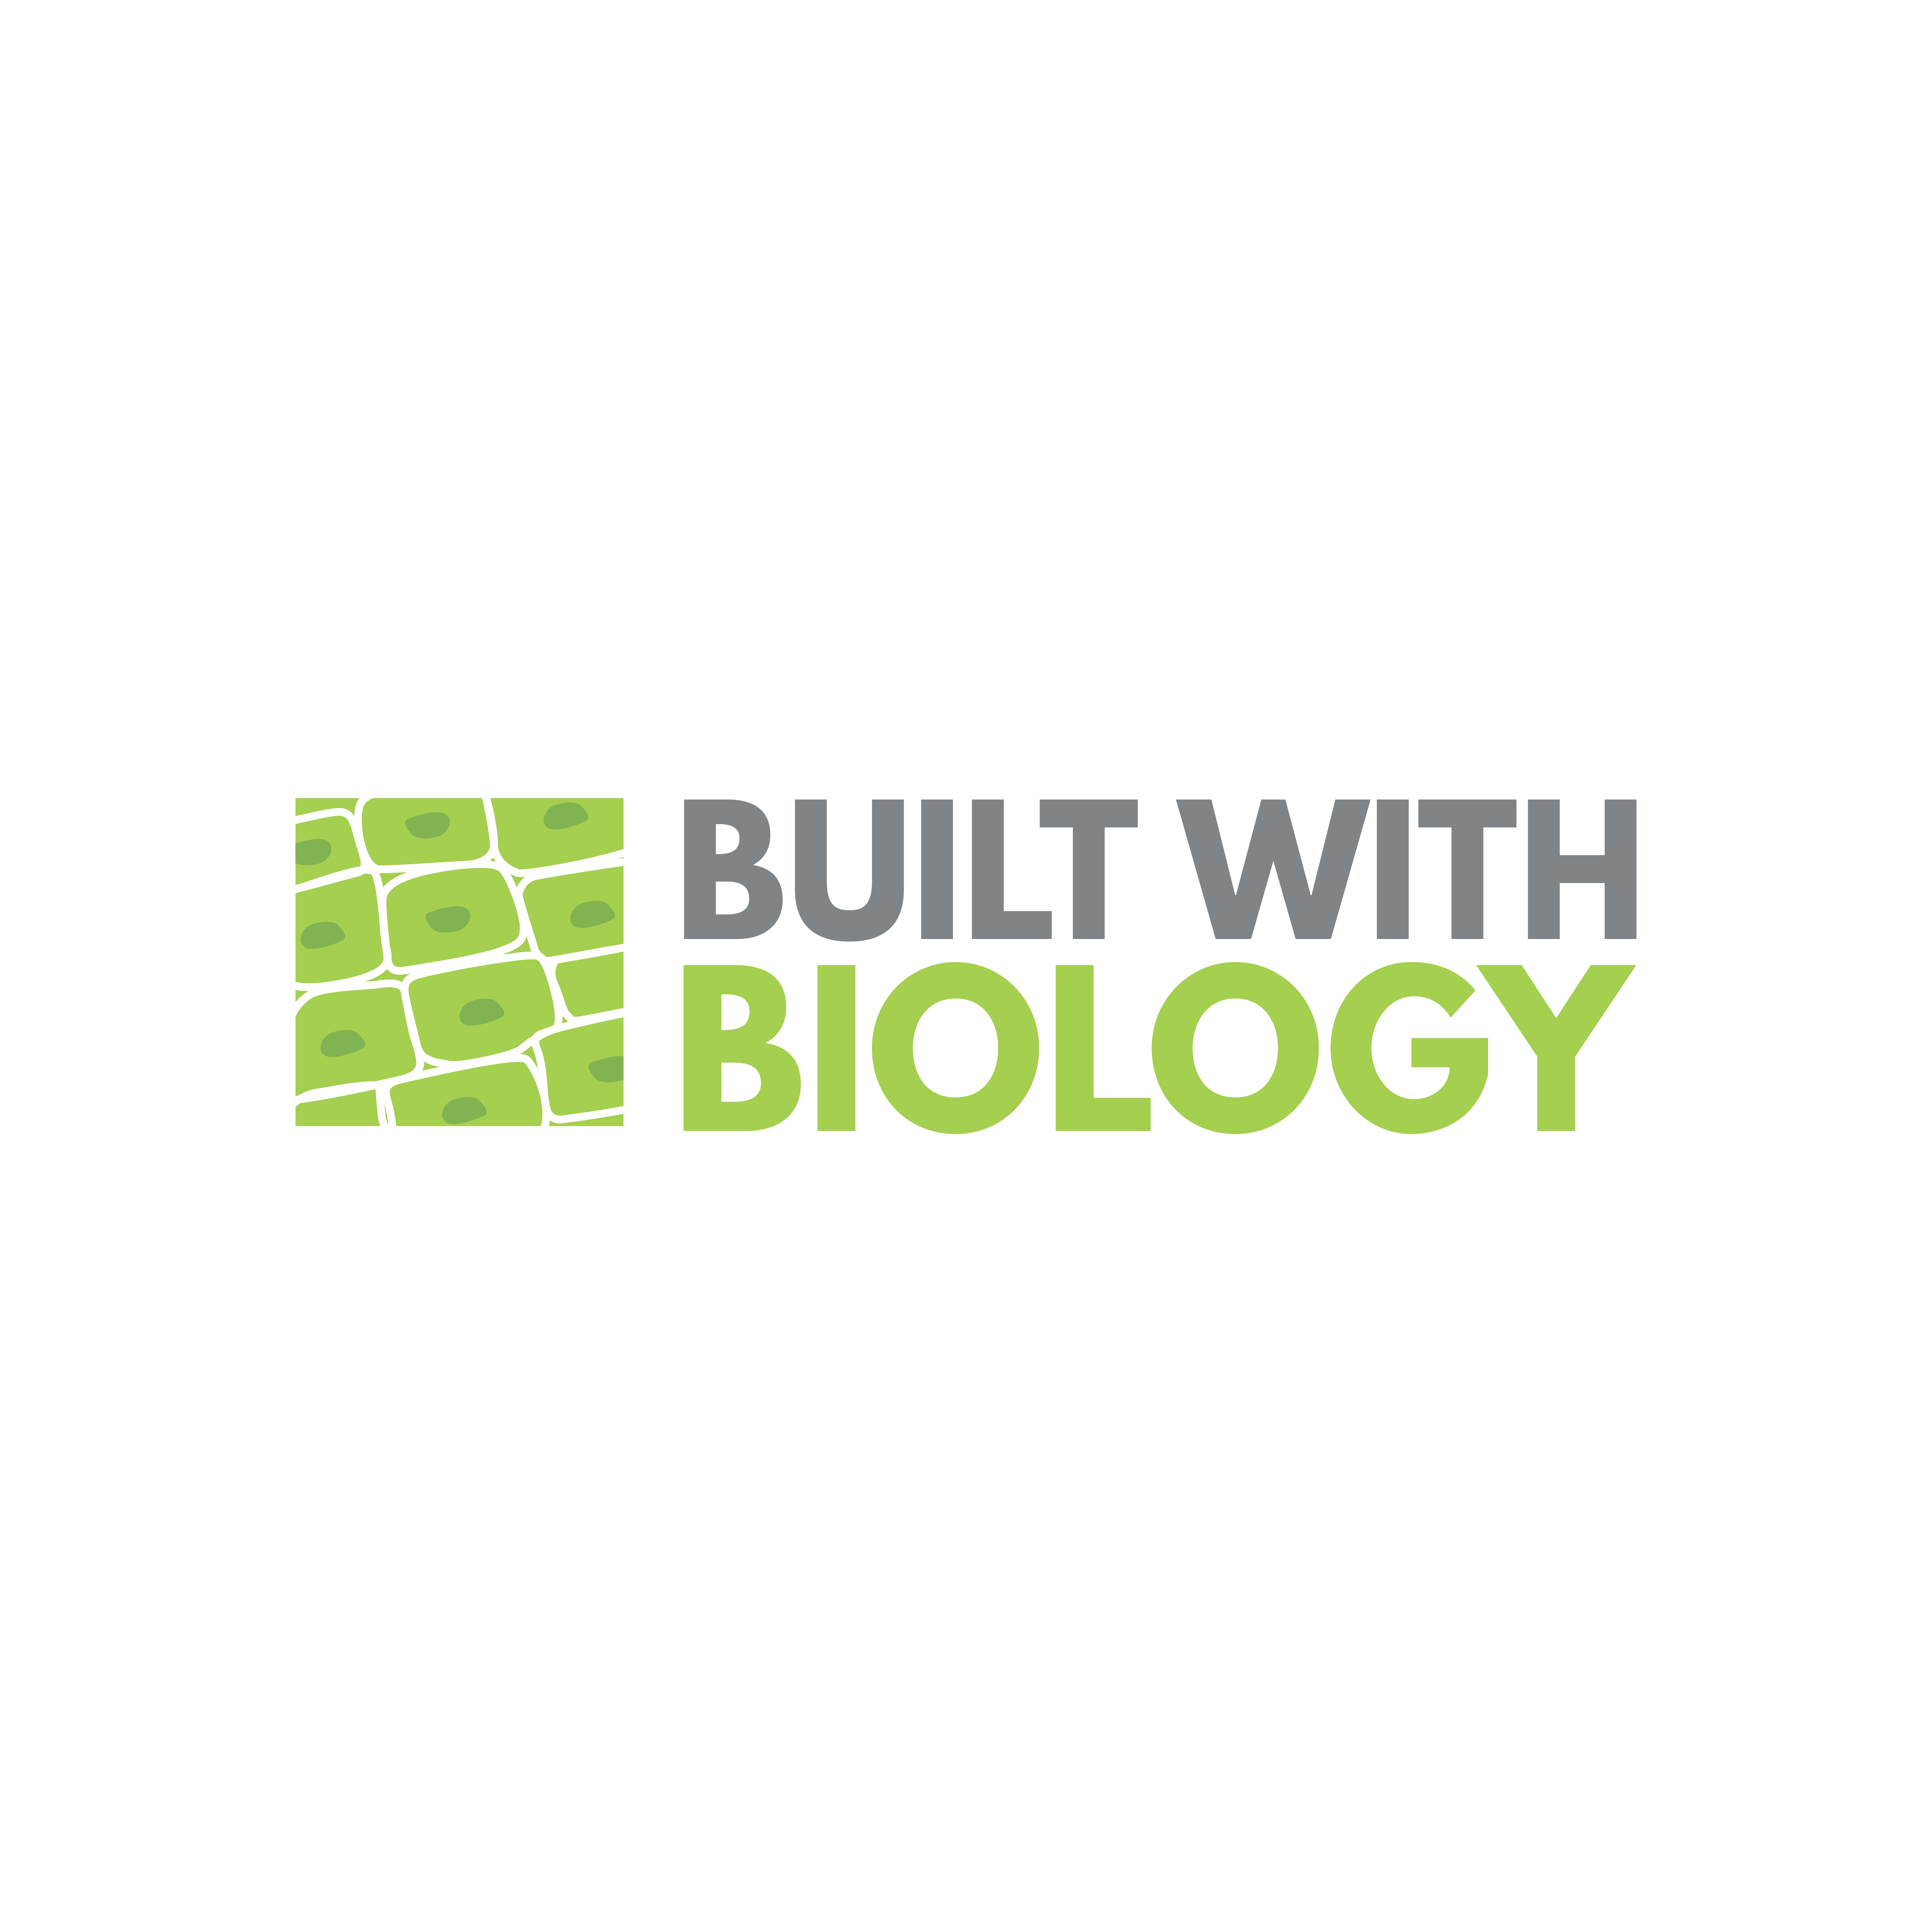 """We need a clean, modern, & beautiful logo for our """"built with biology"""" campaign"""